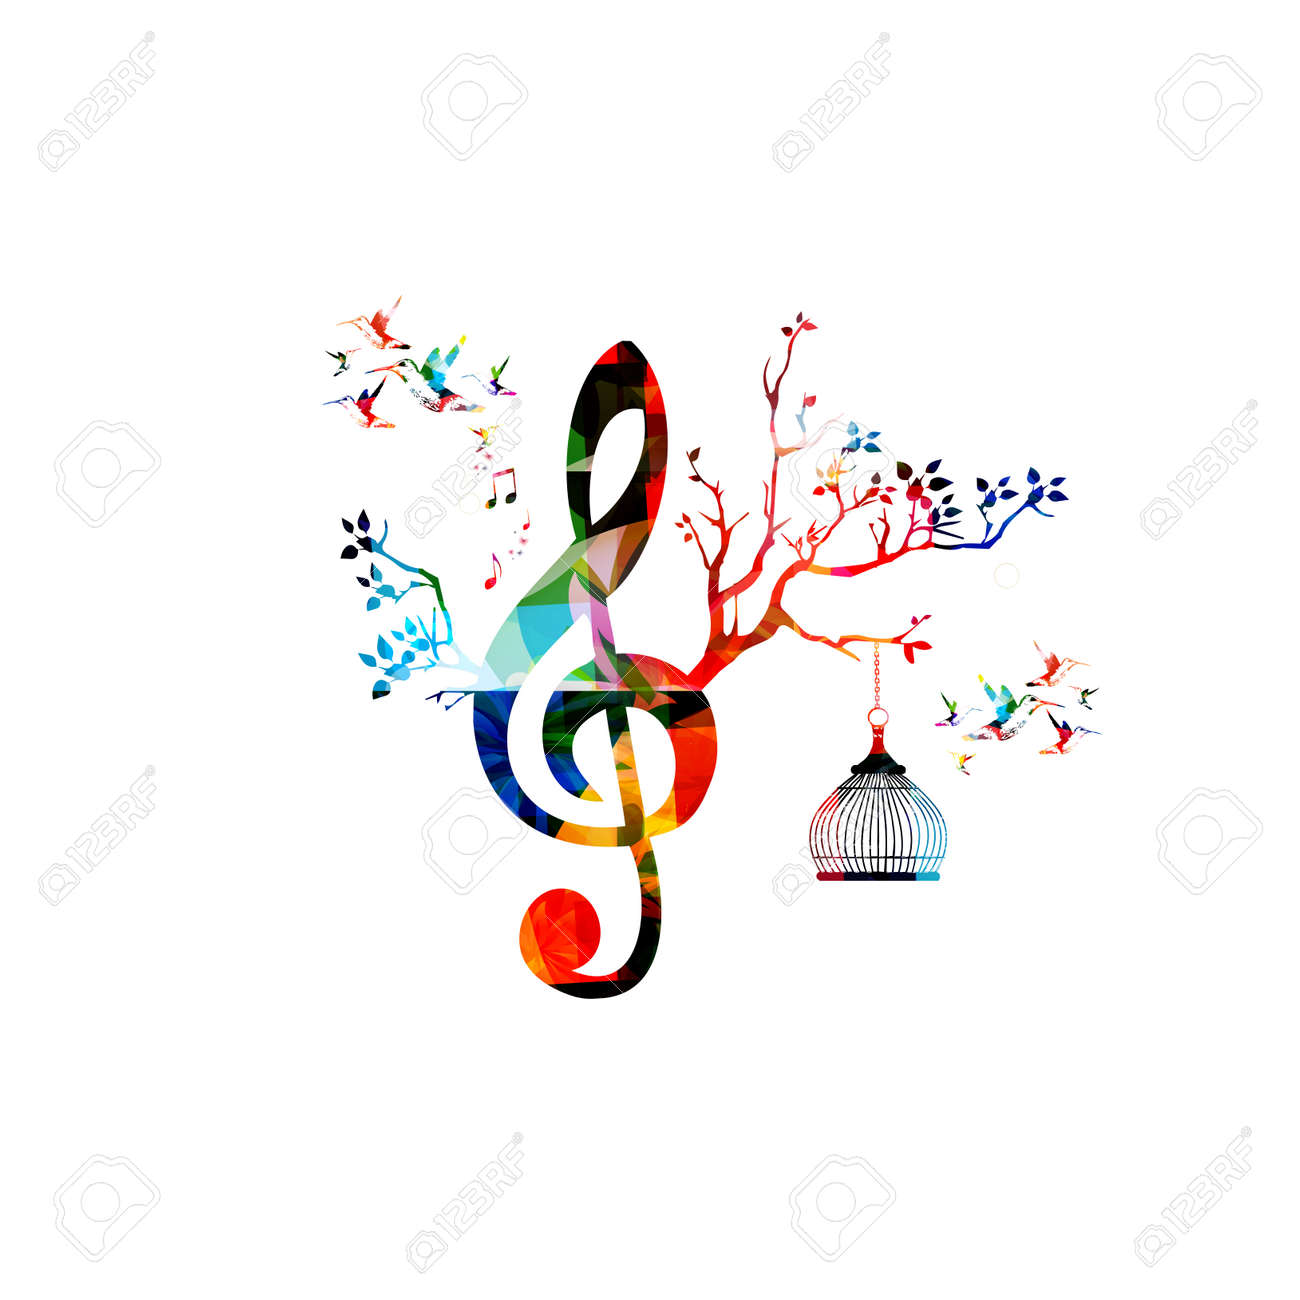 Creative music template vector illustration, colorful G-clef with music notes, music background. Musical design symbols for poster, brochure, banner, flyer, concert, music festival, music shop design - 64461922